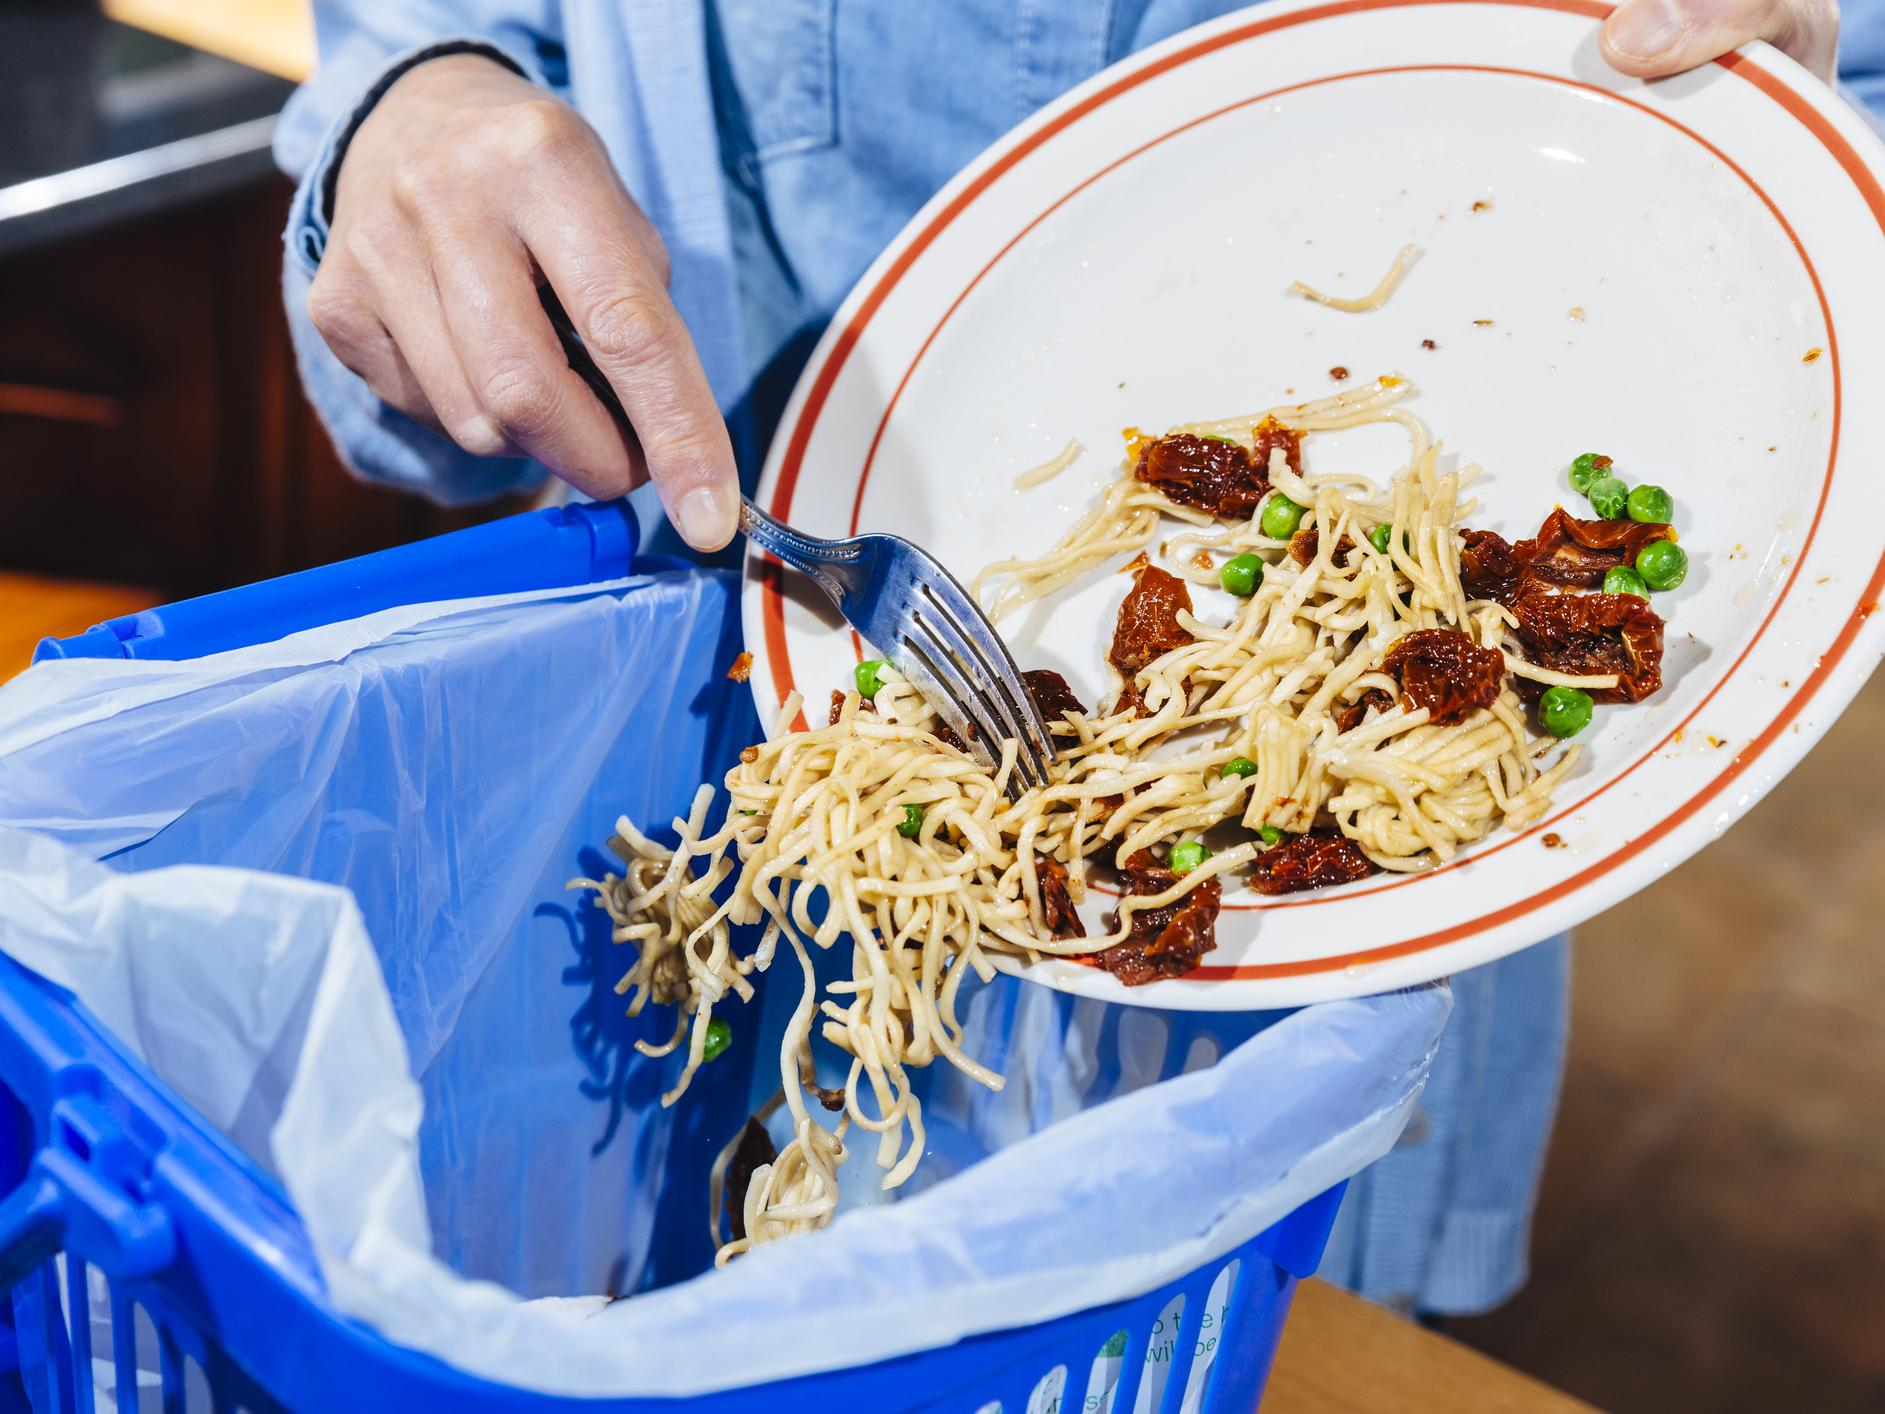 Carbon emissions could be halved by avoiding waste from food, clothing and electronics